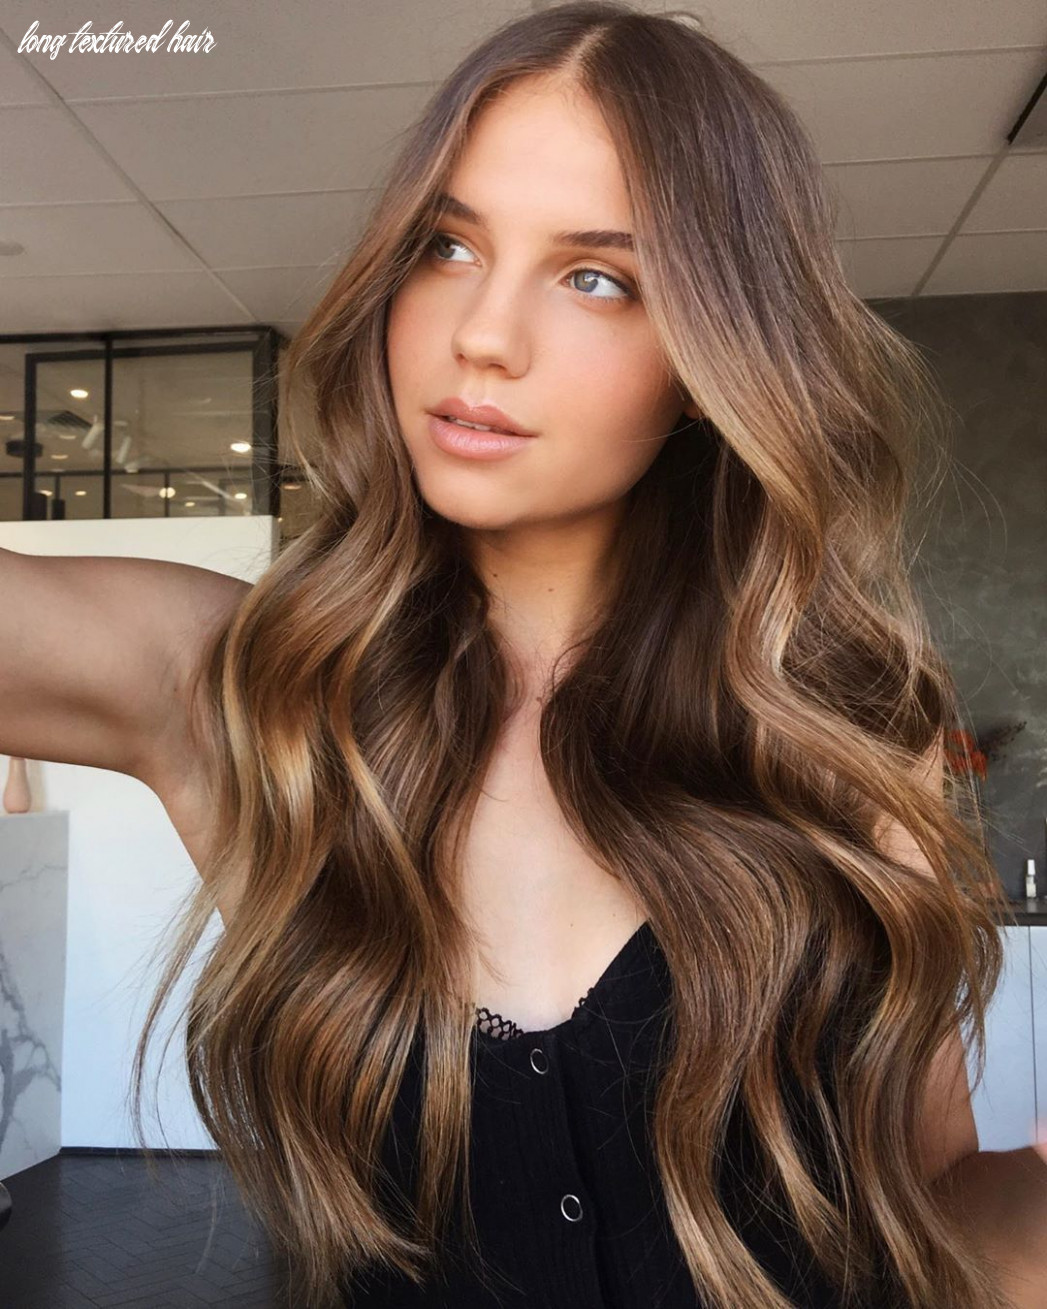 Pin by styles rant on long hairstyles | long textured hair